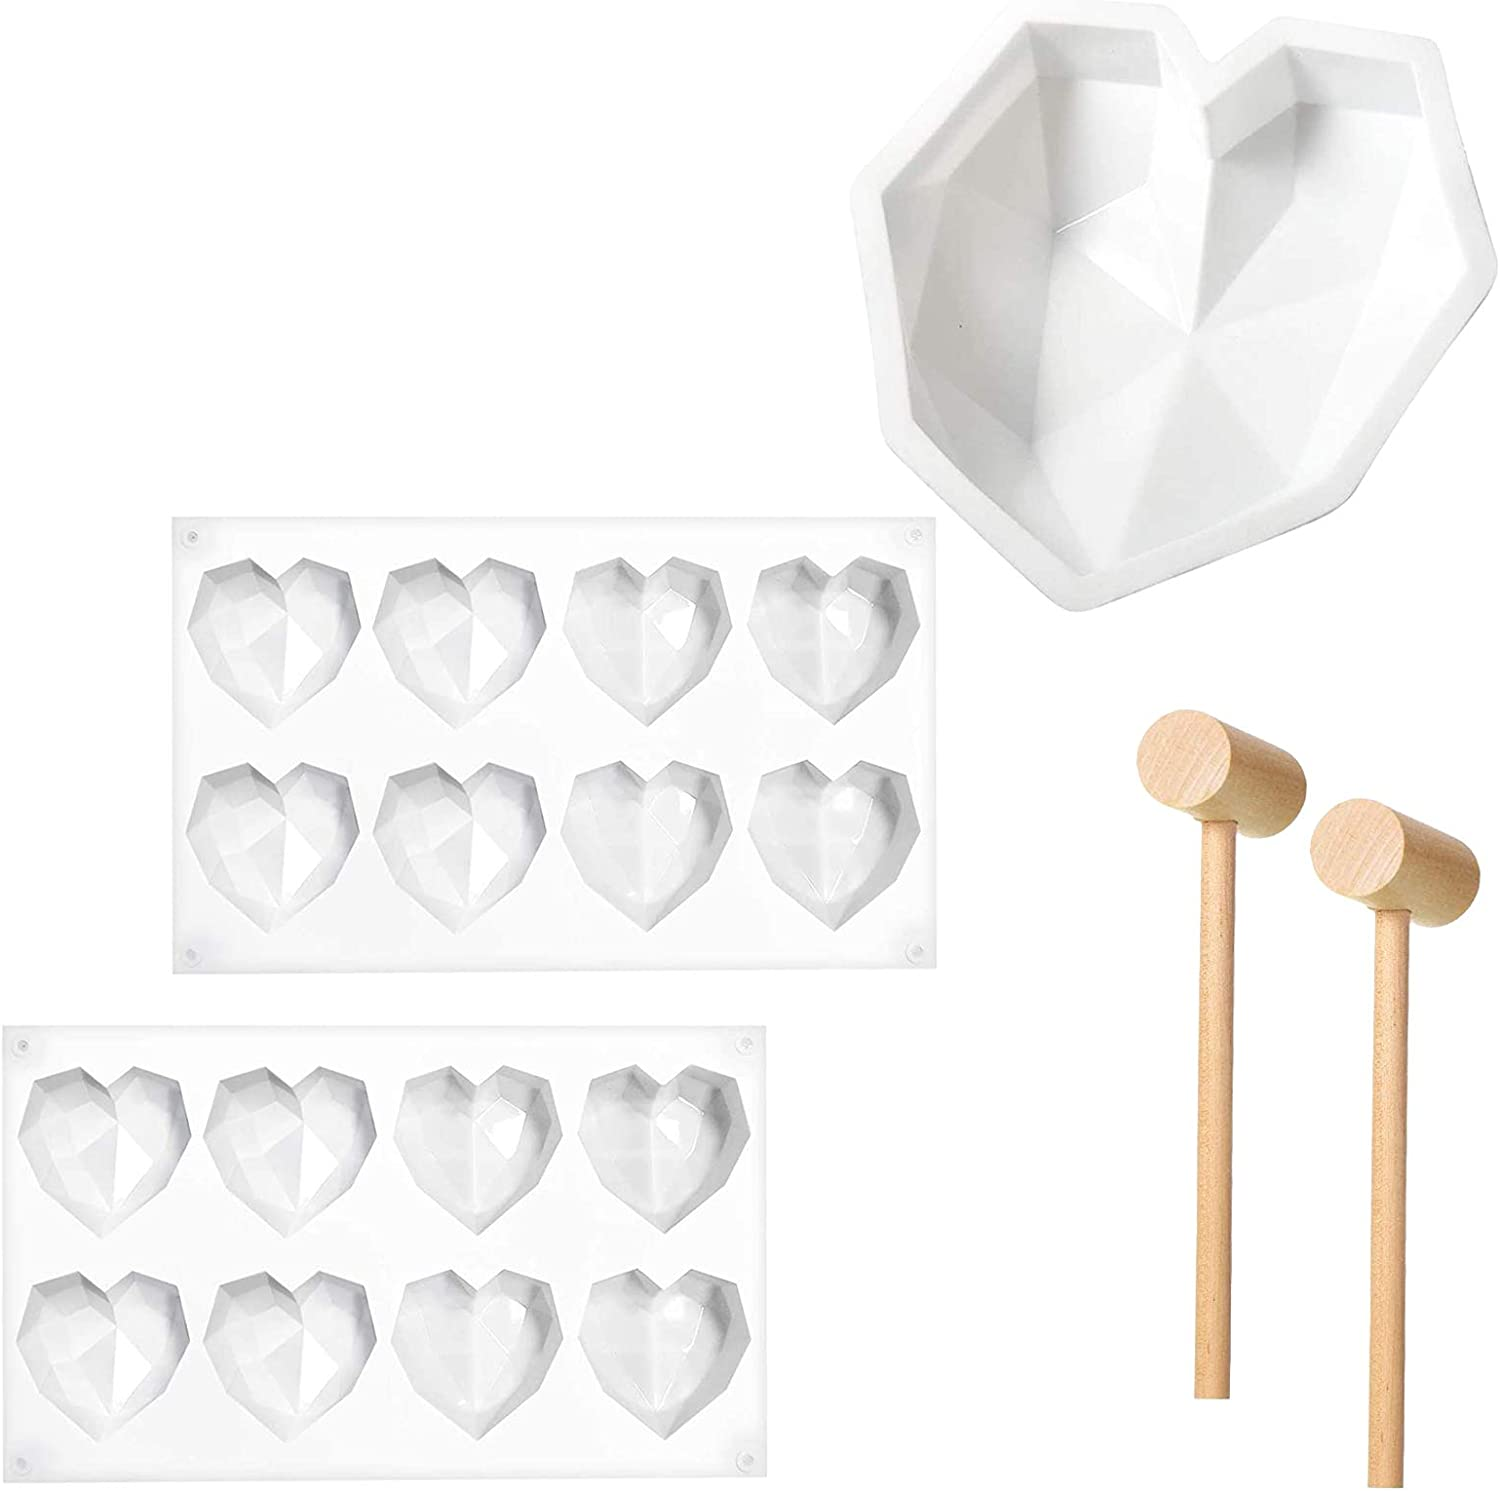 Diamond heart molds for chocolate with wood hammer Silicone Heart Mousse Cake mold breakable heart mold for chocolate 2 Pieces 8 Cavities Heart Diamond Shaped Cake Mold Tray 2 Pieces Wooden Hammer